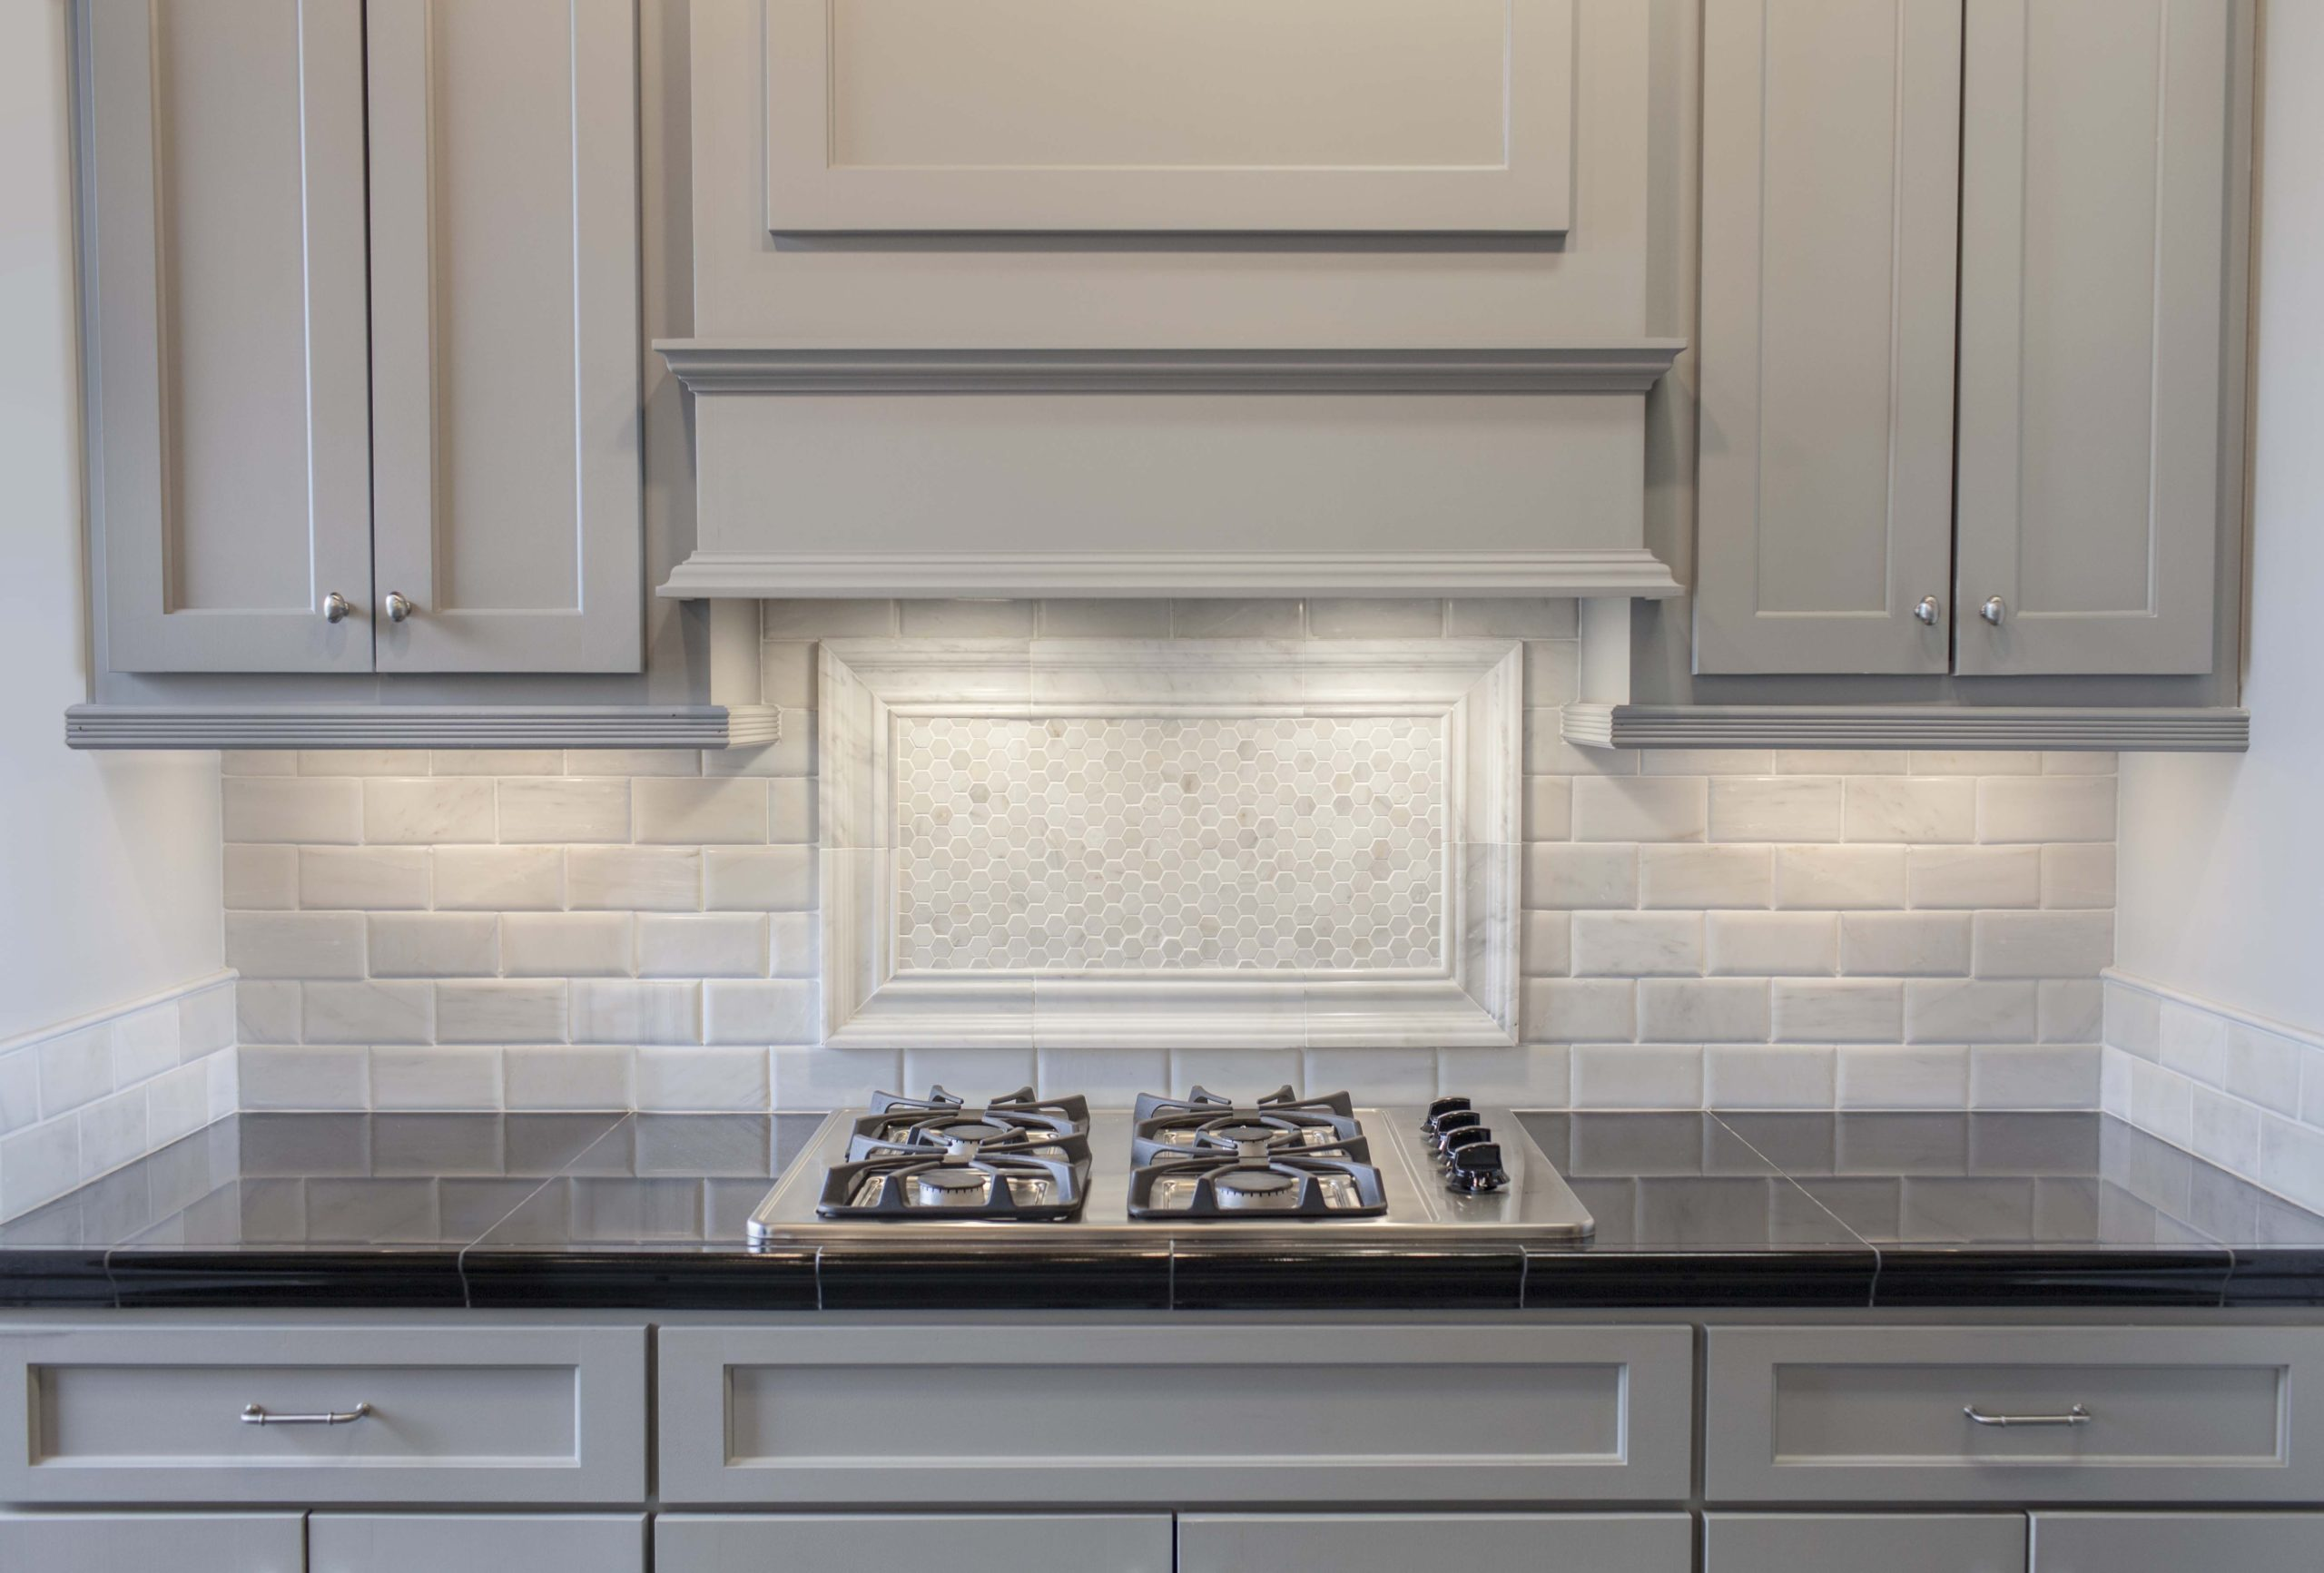 - How To Pair Countertops With Gray Cabinets - Queen City Kitchen & Bath